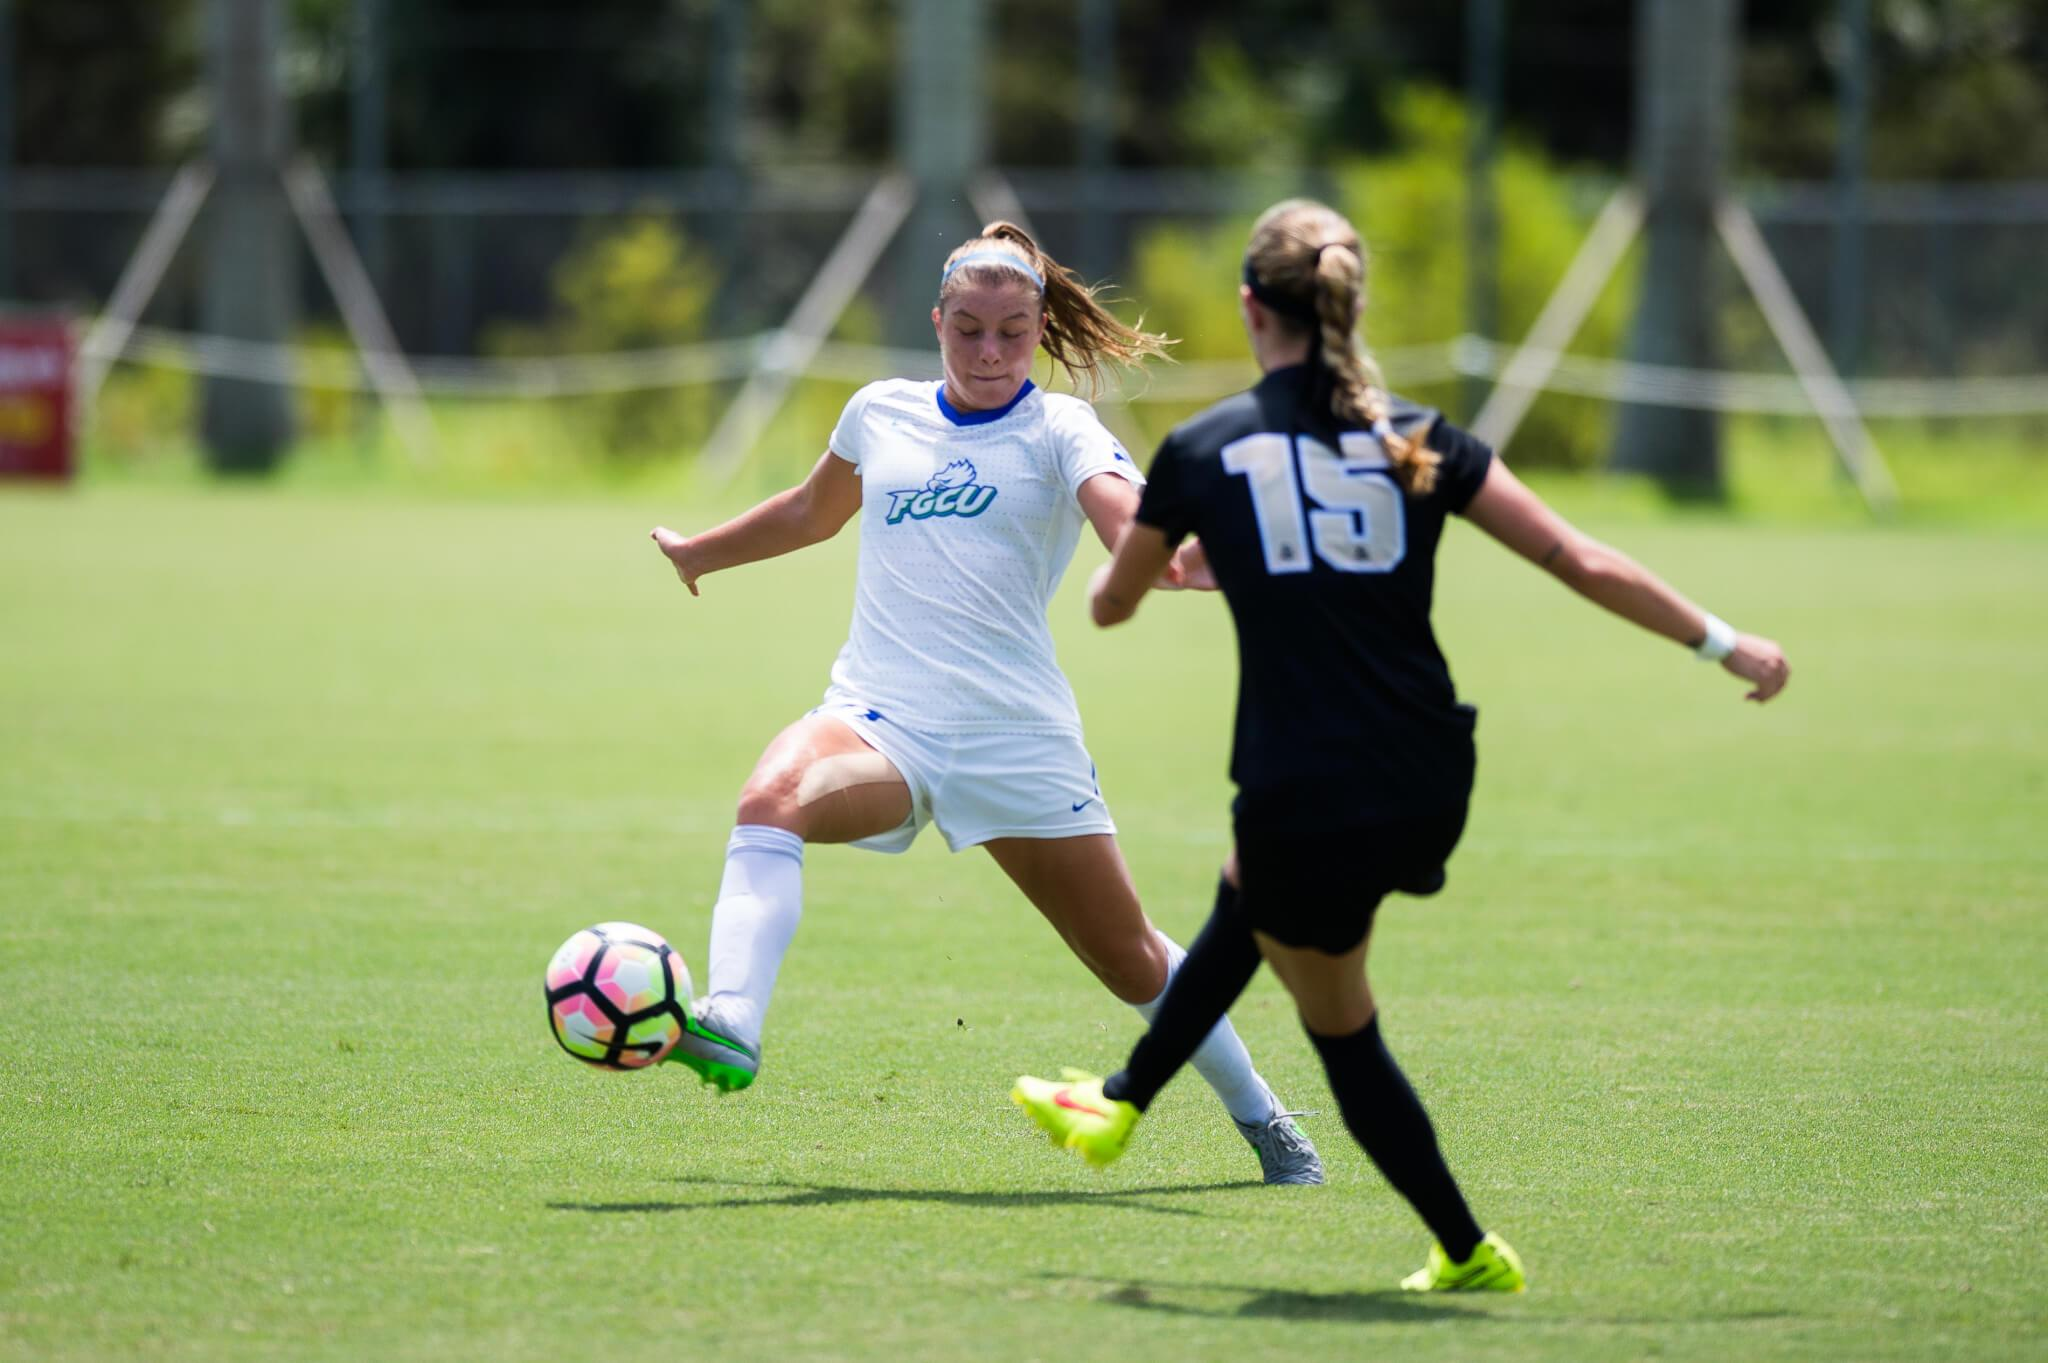 FGCU women's soccer goes 1-1 in two game conference play road trip